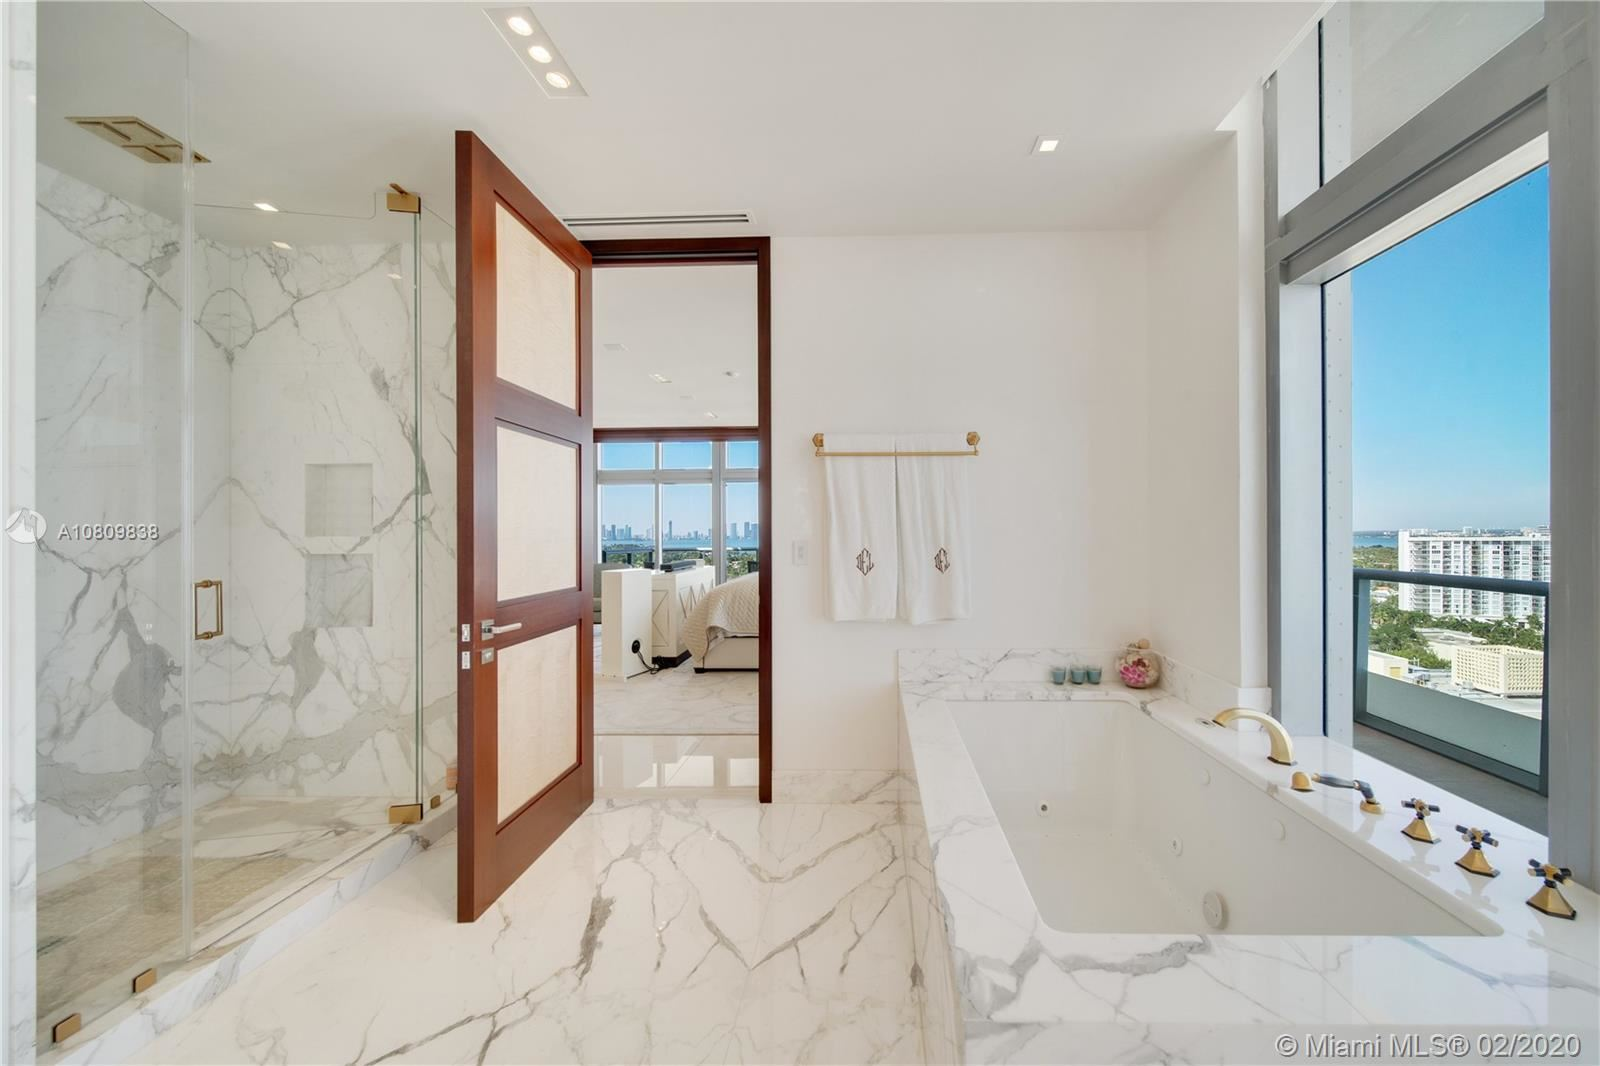 Photo 20 of Listing MLS a10809838 in 3737 Collins Ave #PH-4 Miami Beach FL 33140